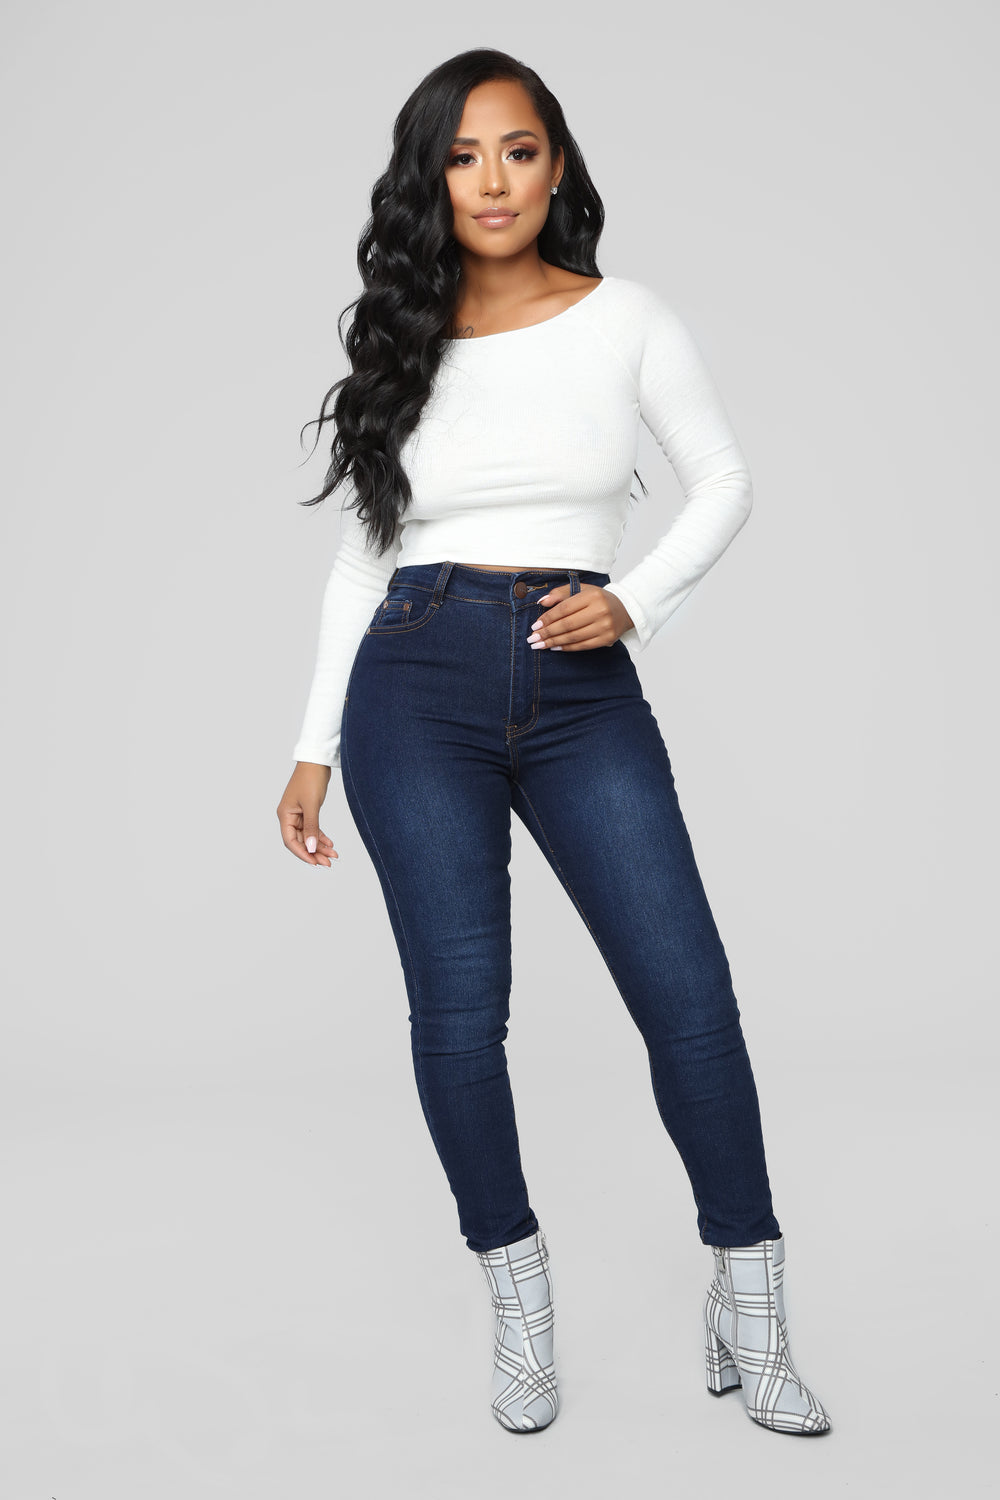 My Favorite Off Shoulder Top - Soft White